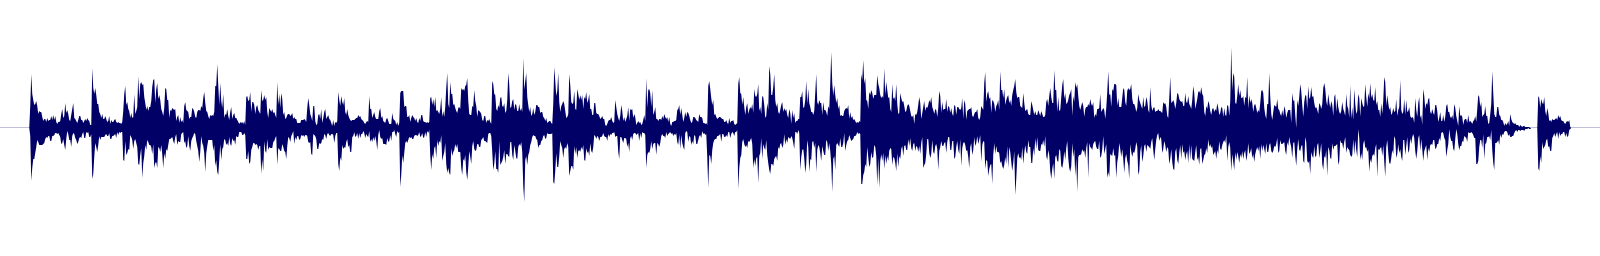 waveform of track #117543